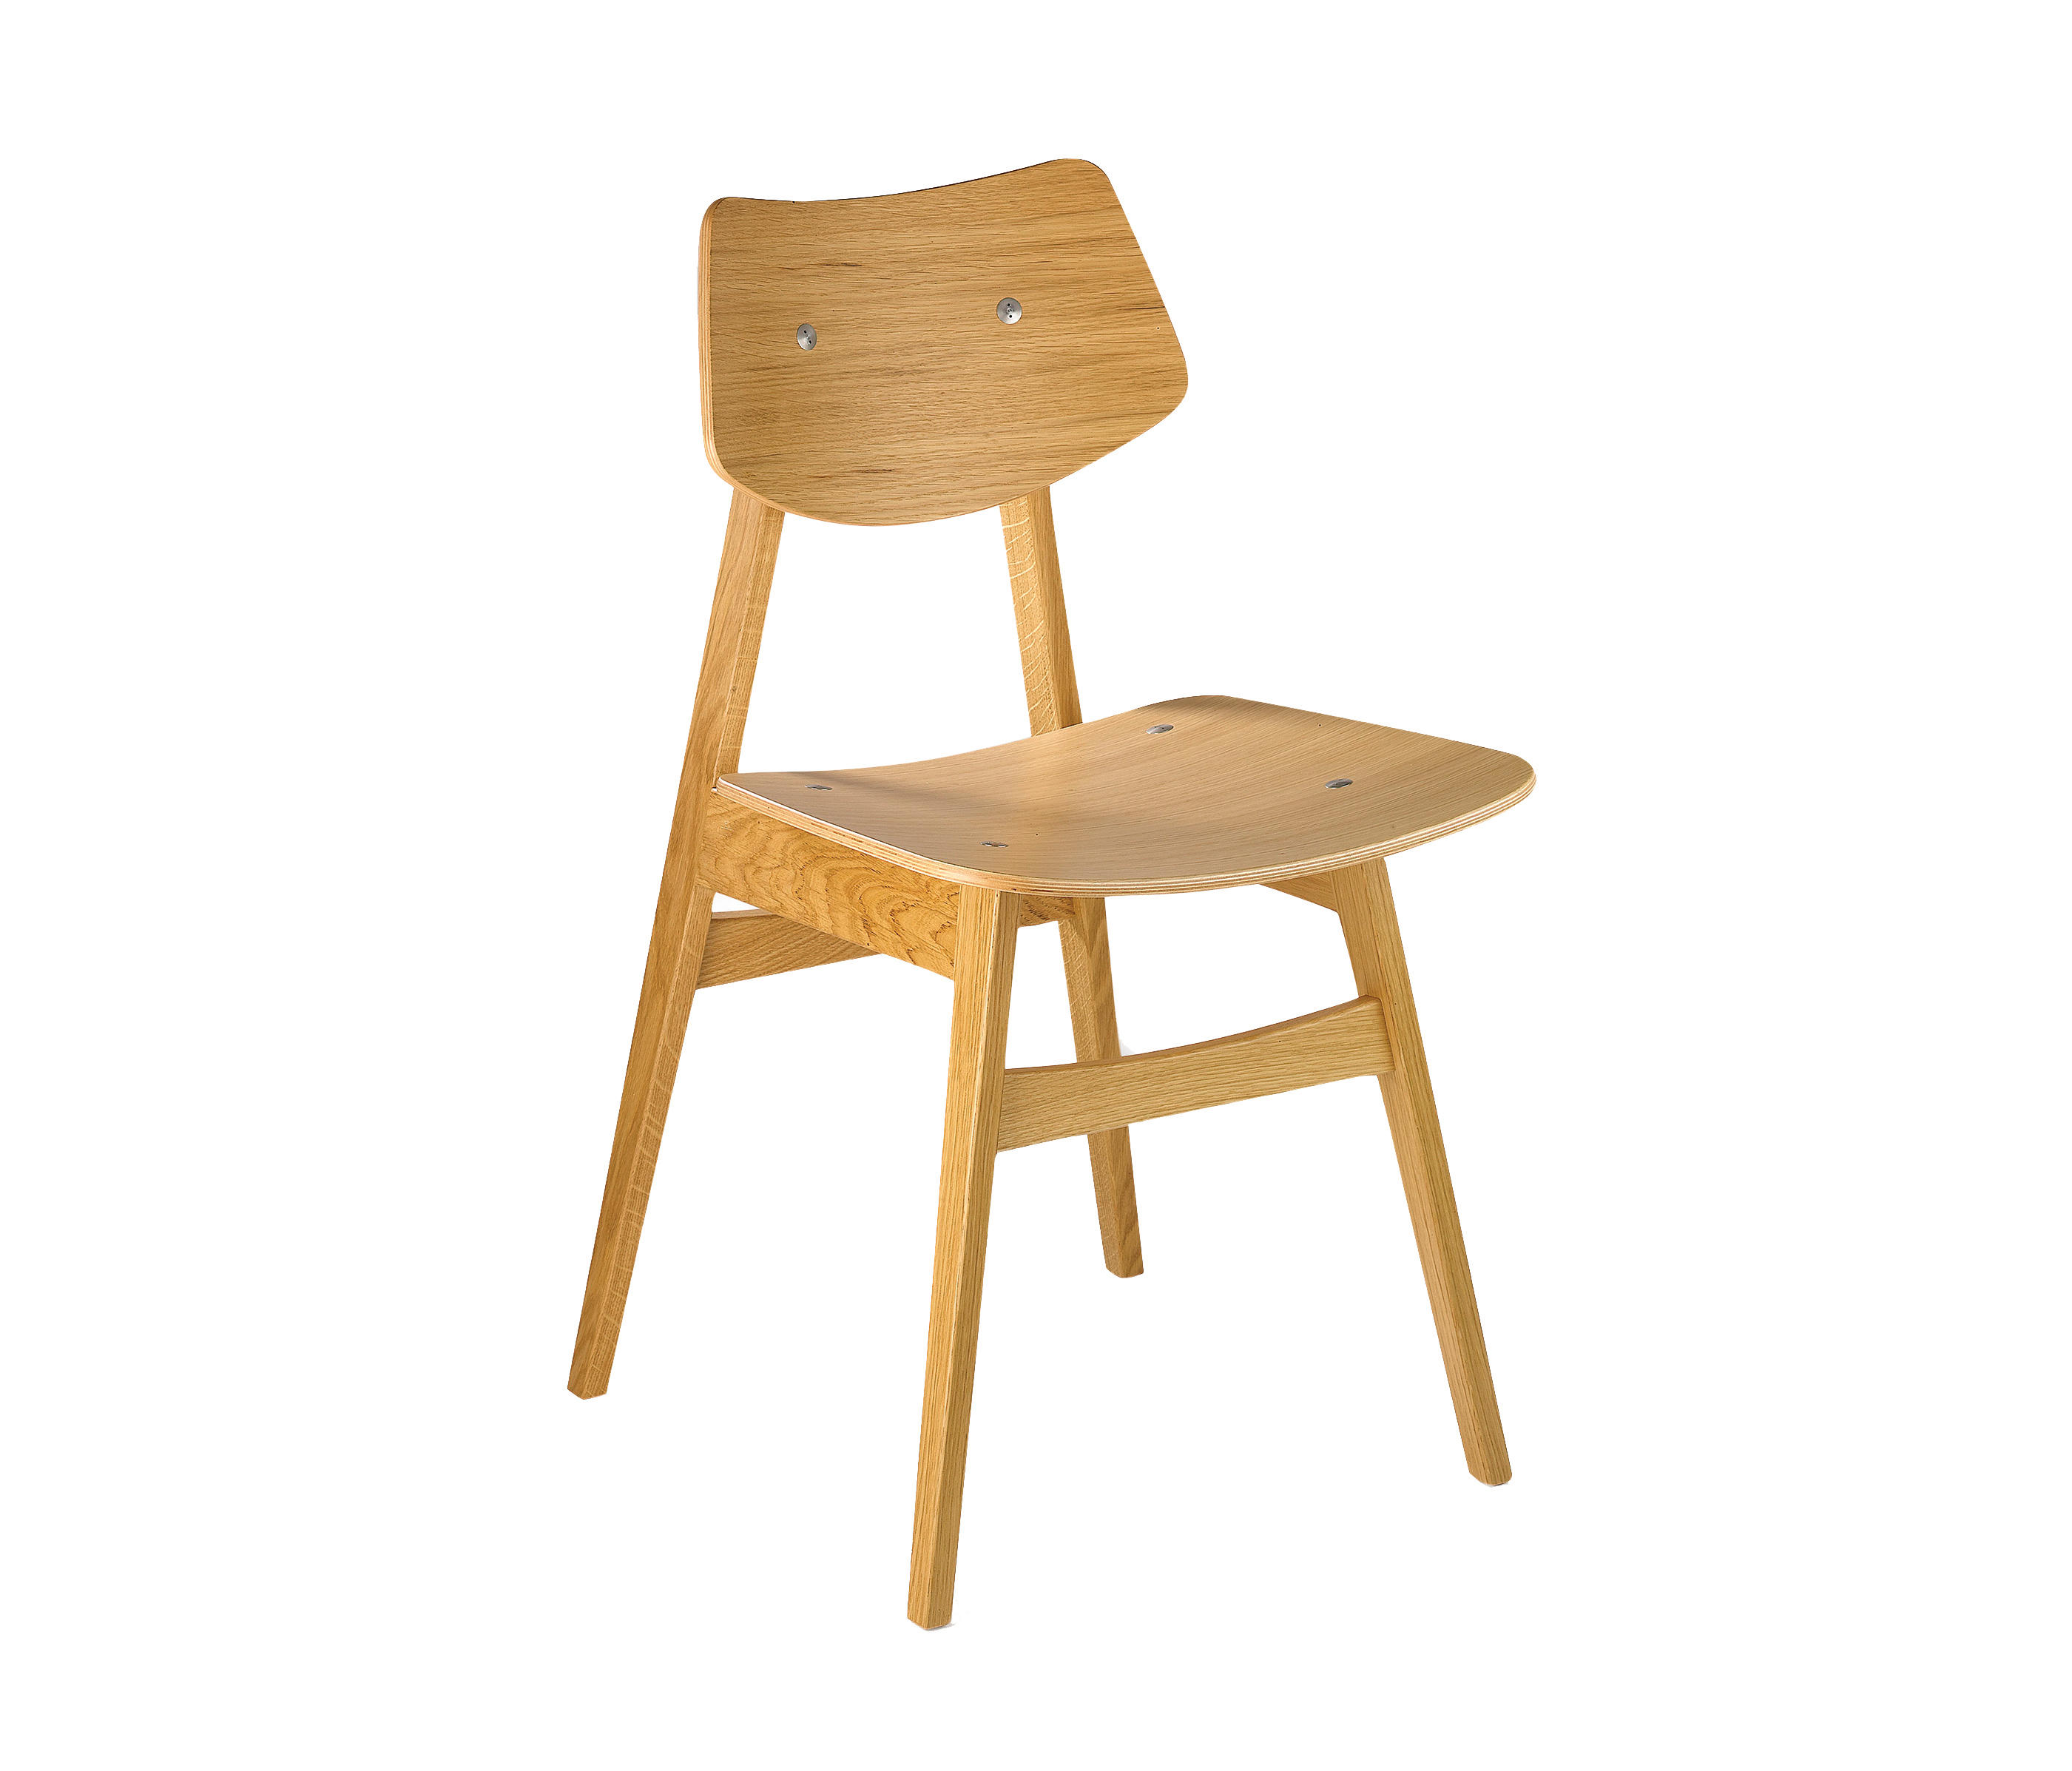 1960 CHAIR OAK Visitors chairs Side chairs from Rex Kralj